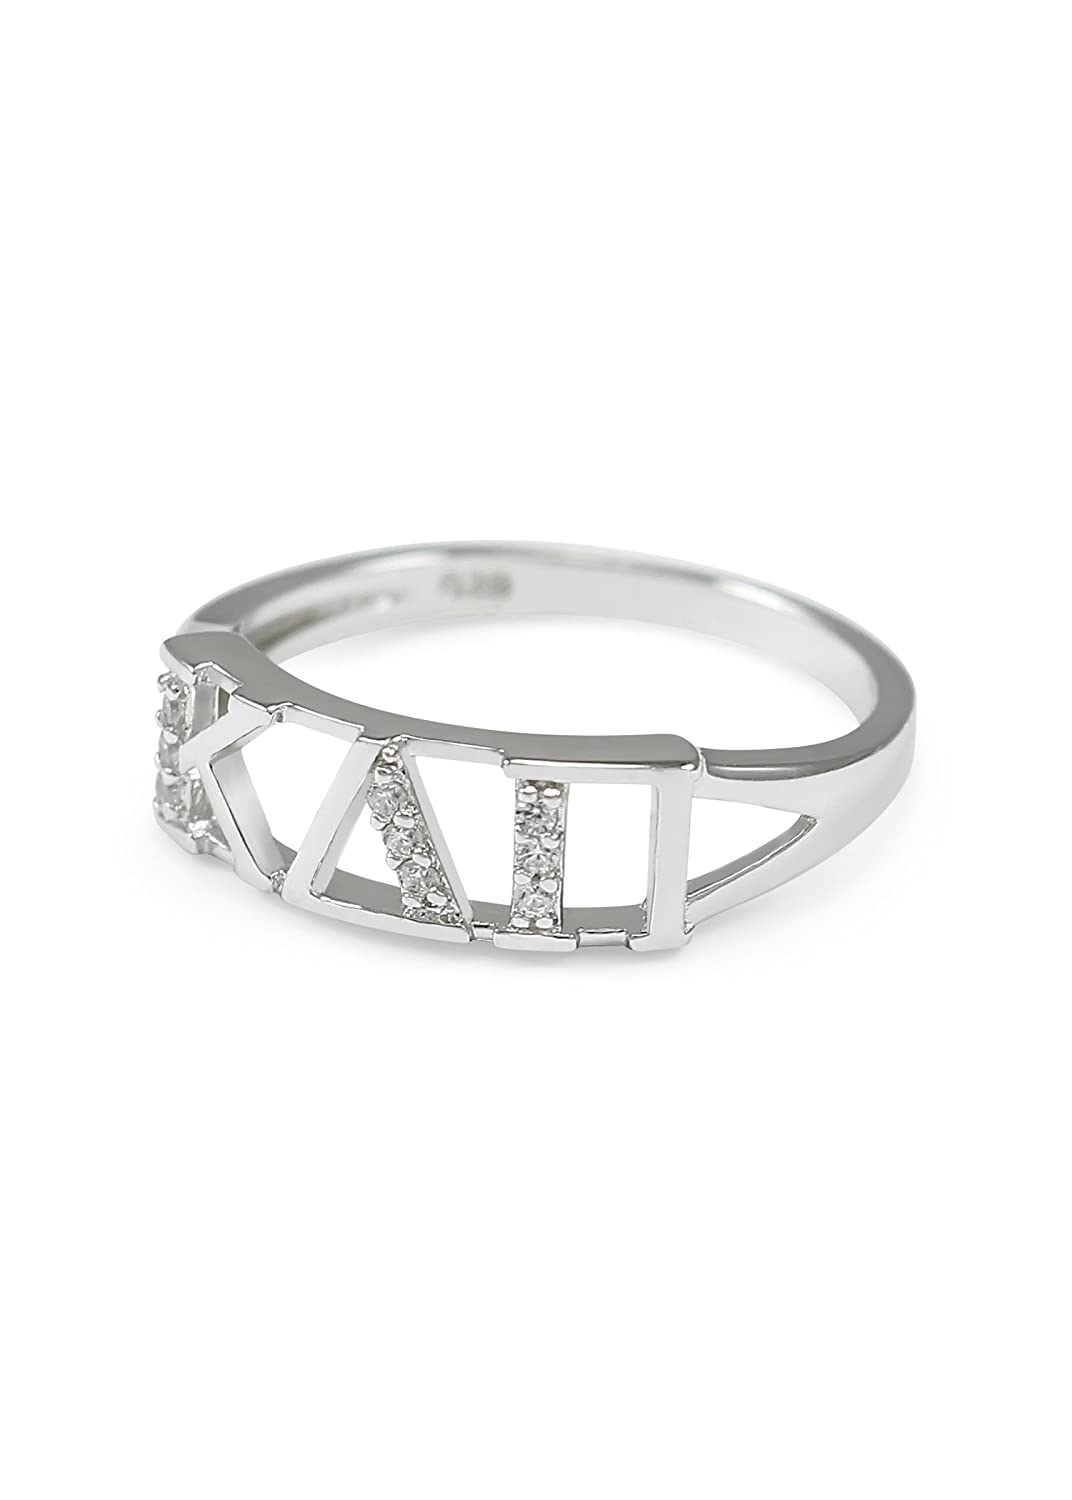 The Collegiate Standard Kappa Delta Pi Sterling Silver Ring with CZs